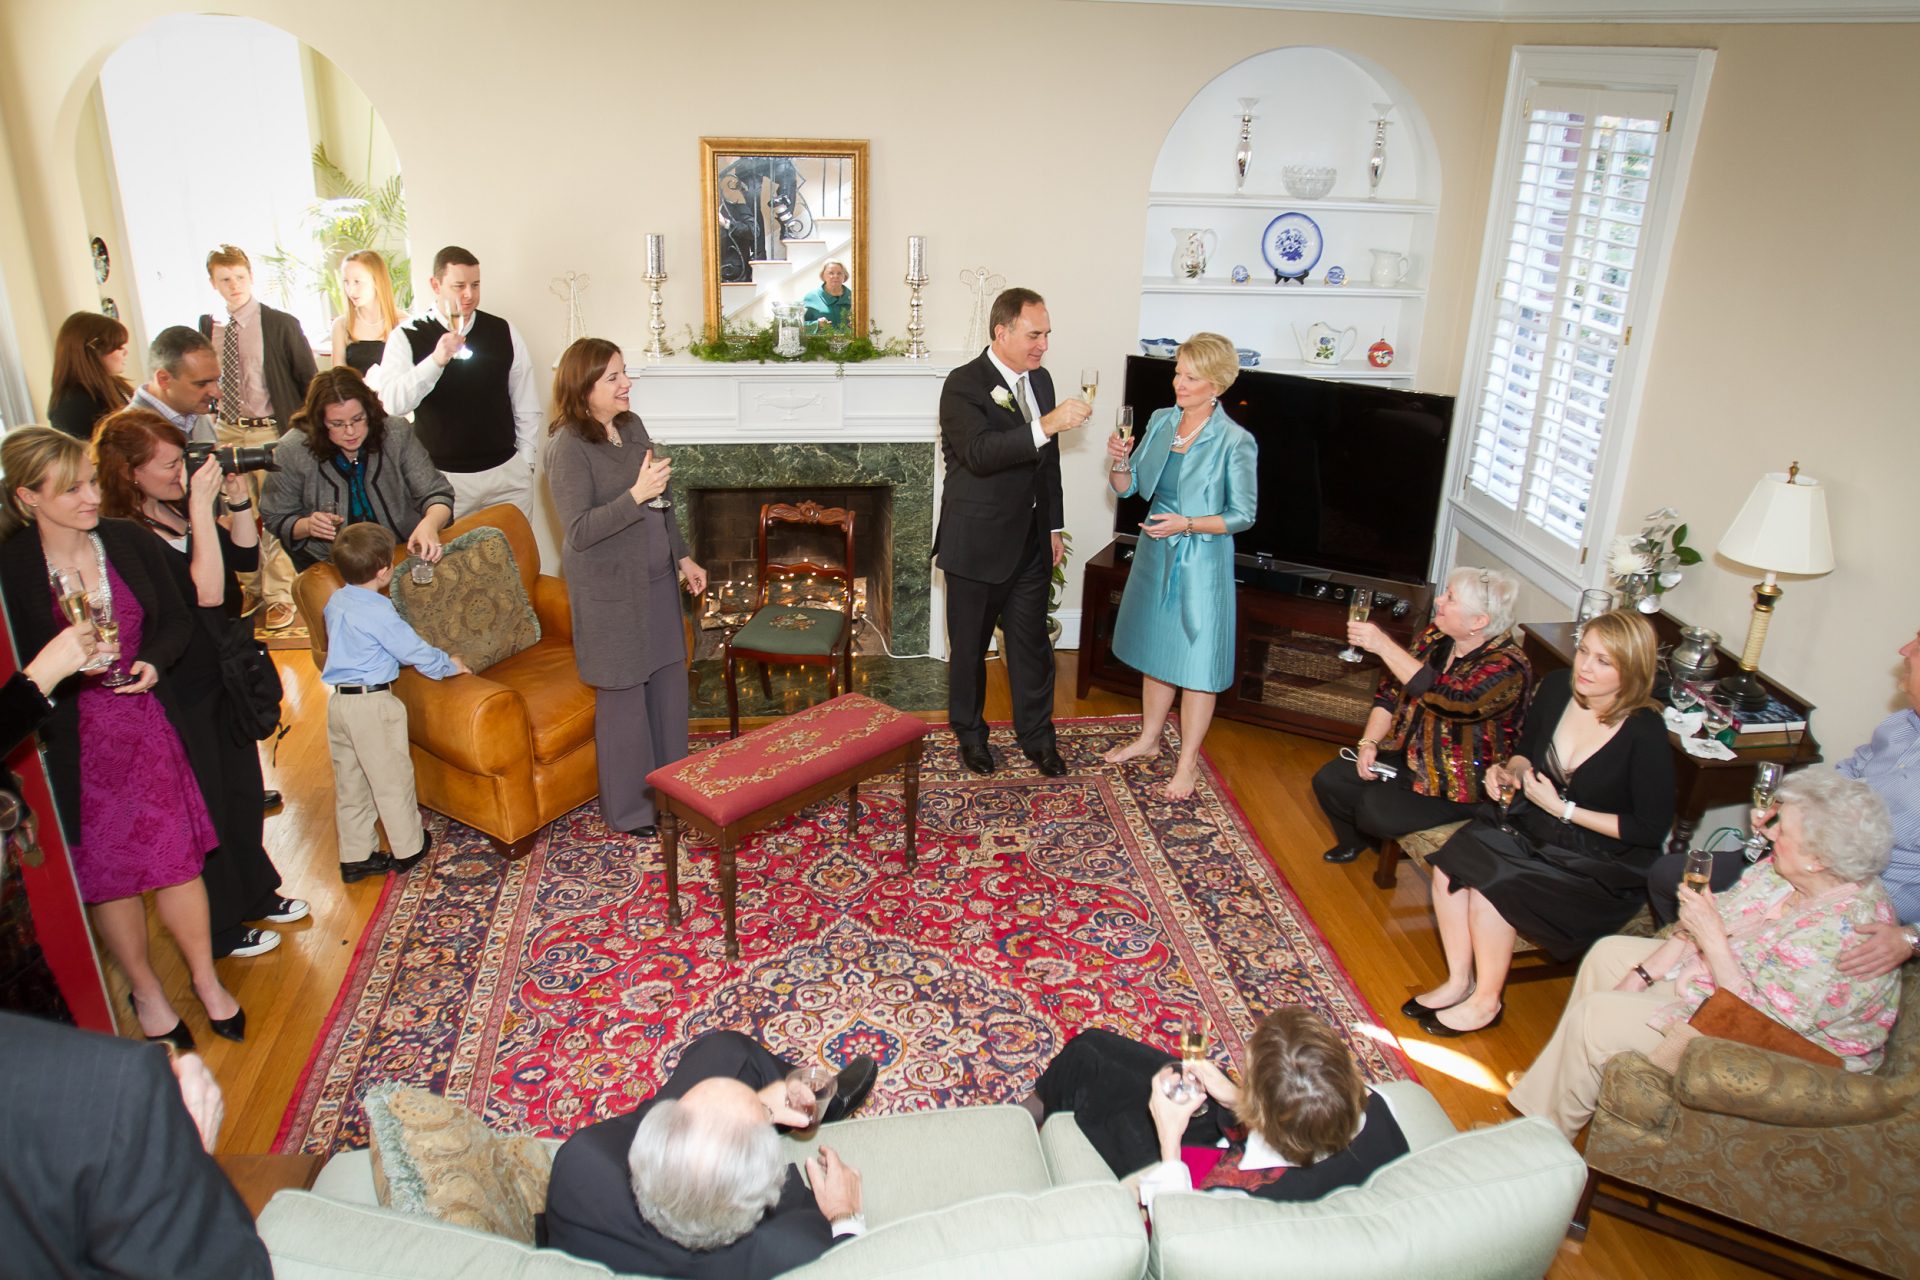 Atlanta GA Home Wedding Reception Photography | Family and friends surround the couple in their living room